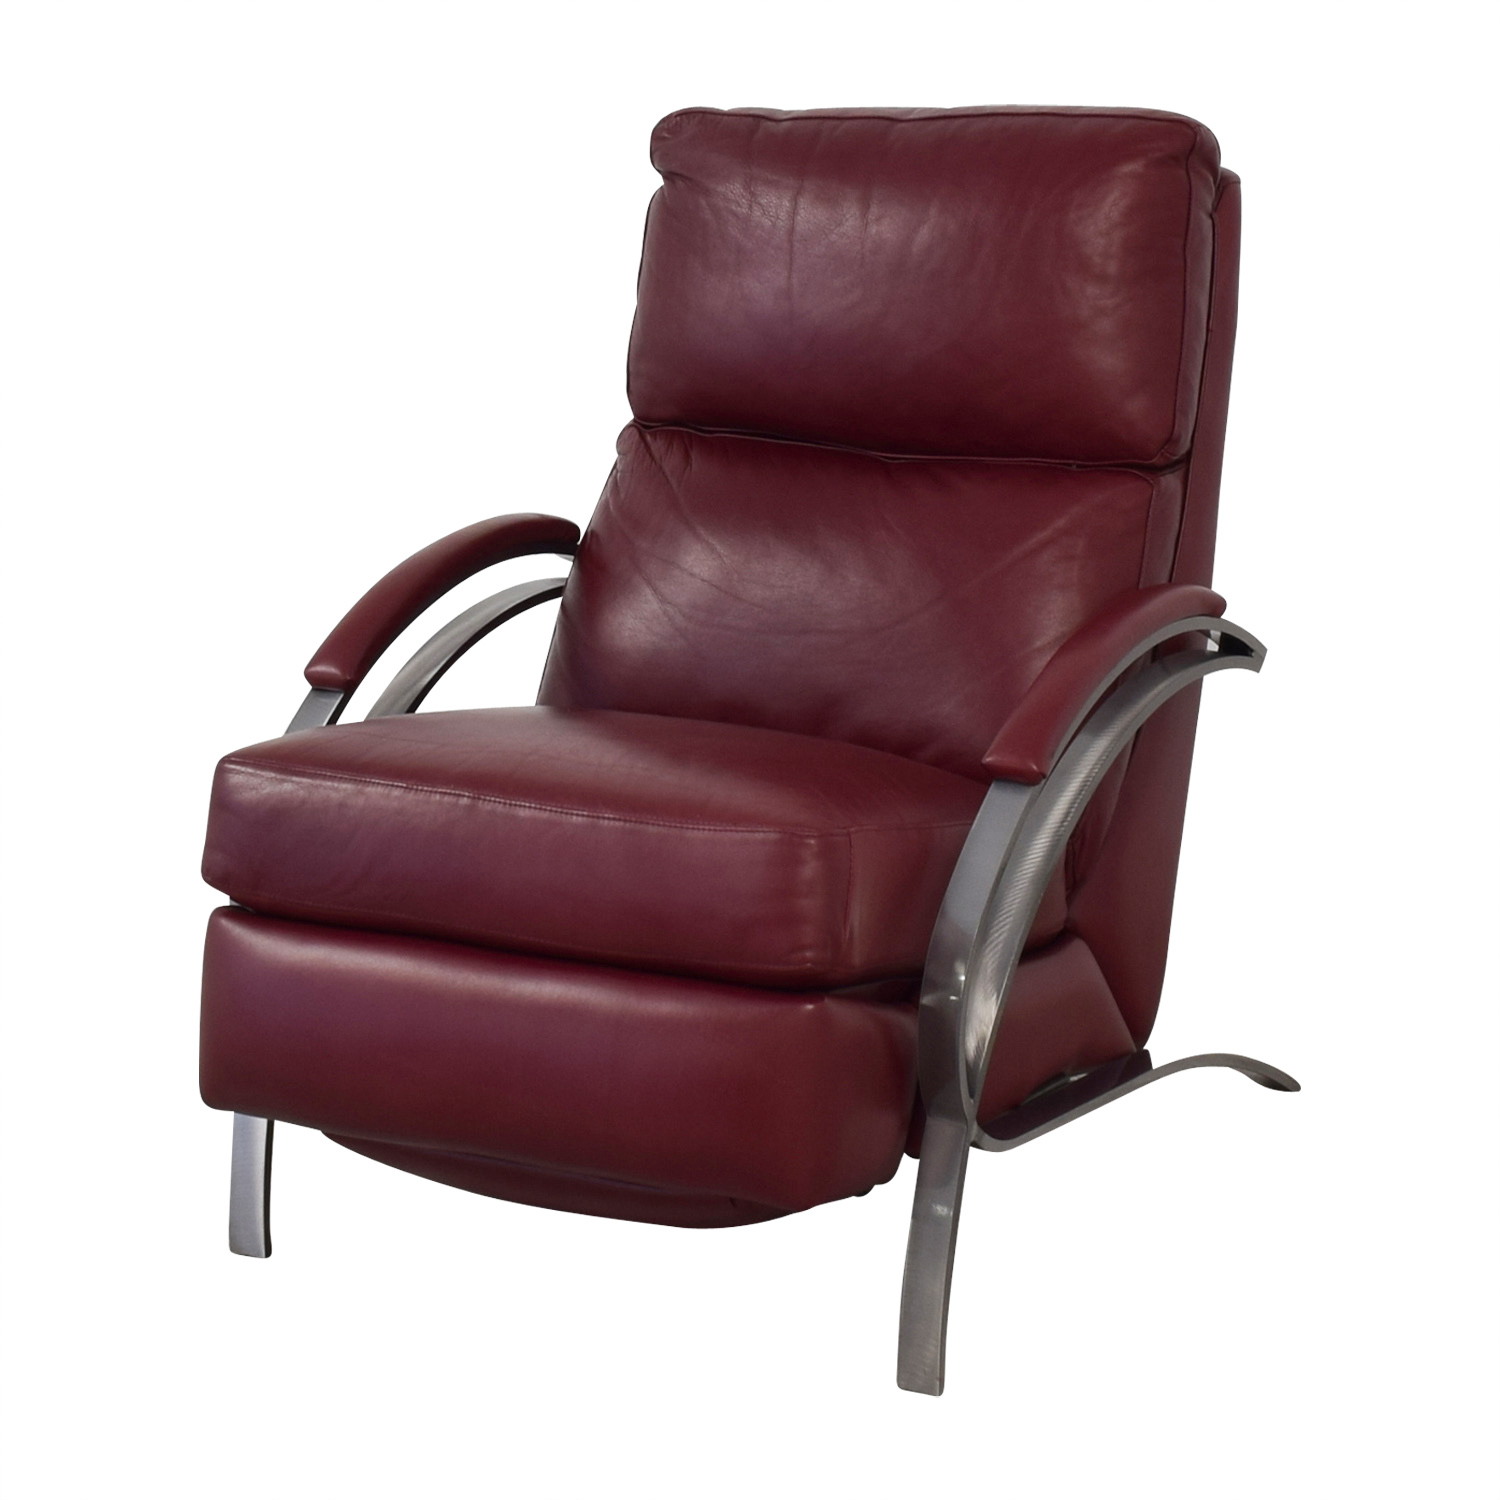 Bloomingdale's Loop Recliner / Recliners